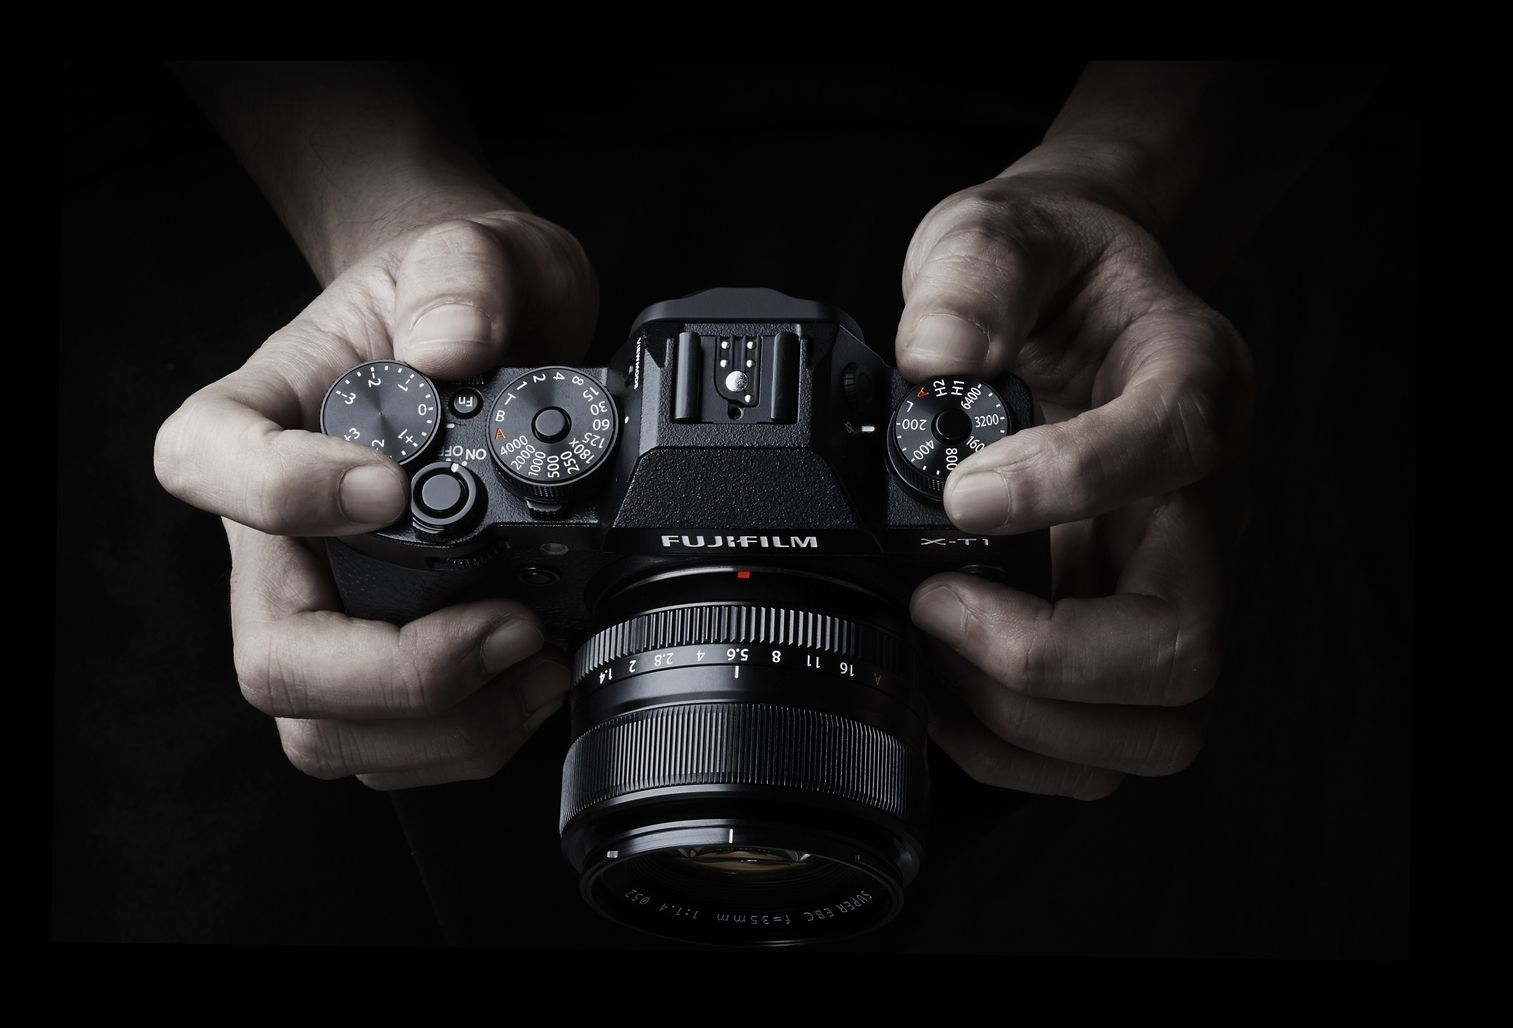 The Fujifilm X-T1 Full Review and Field Test (3/7) [Dan Bailey's Adventure Photography Blog]